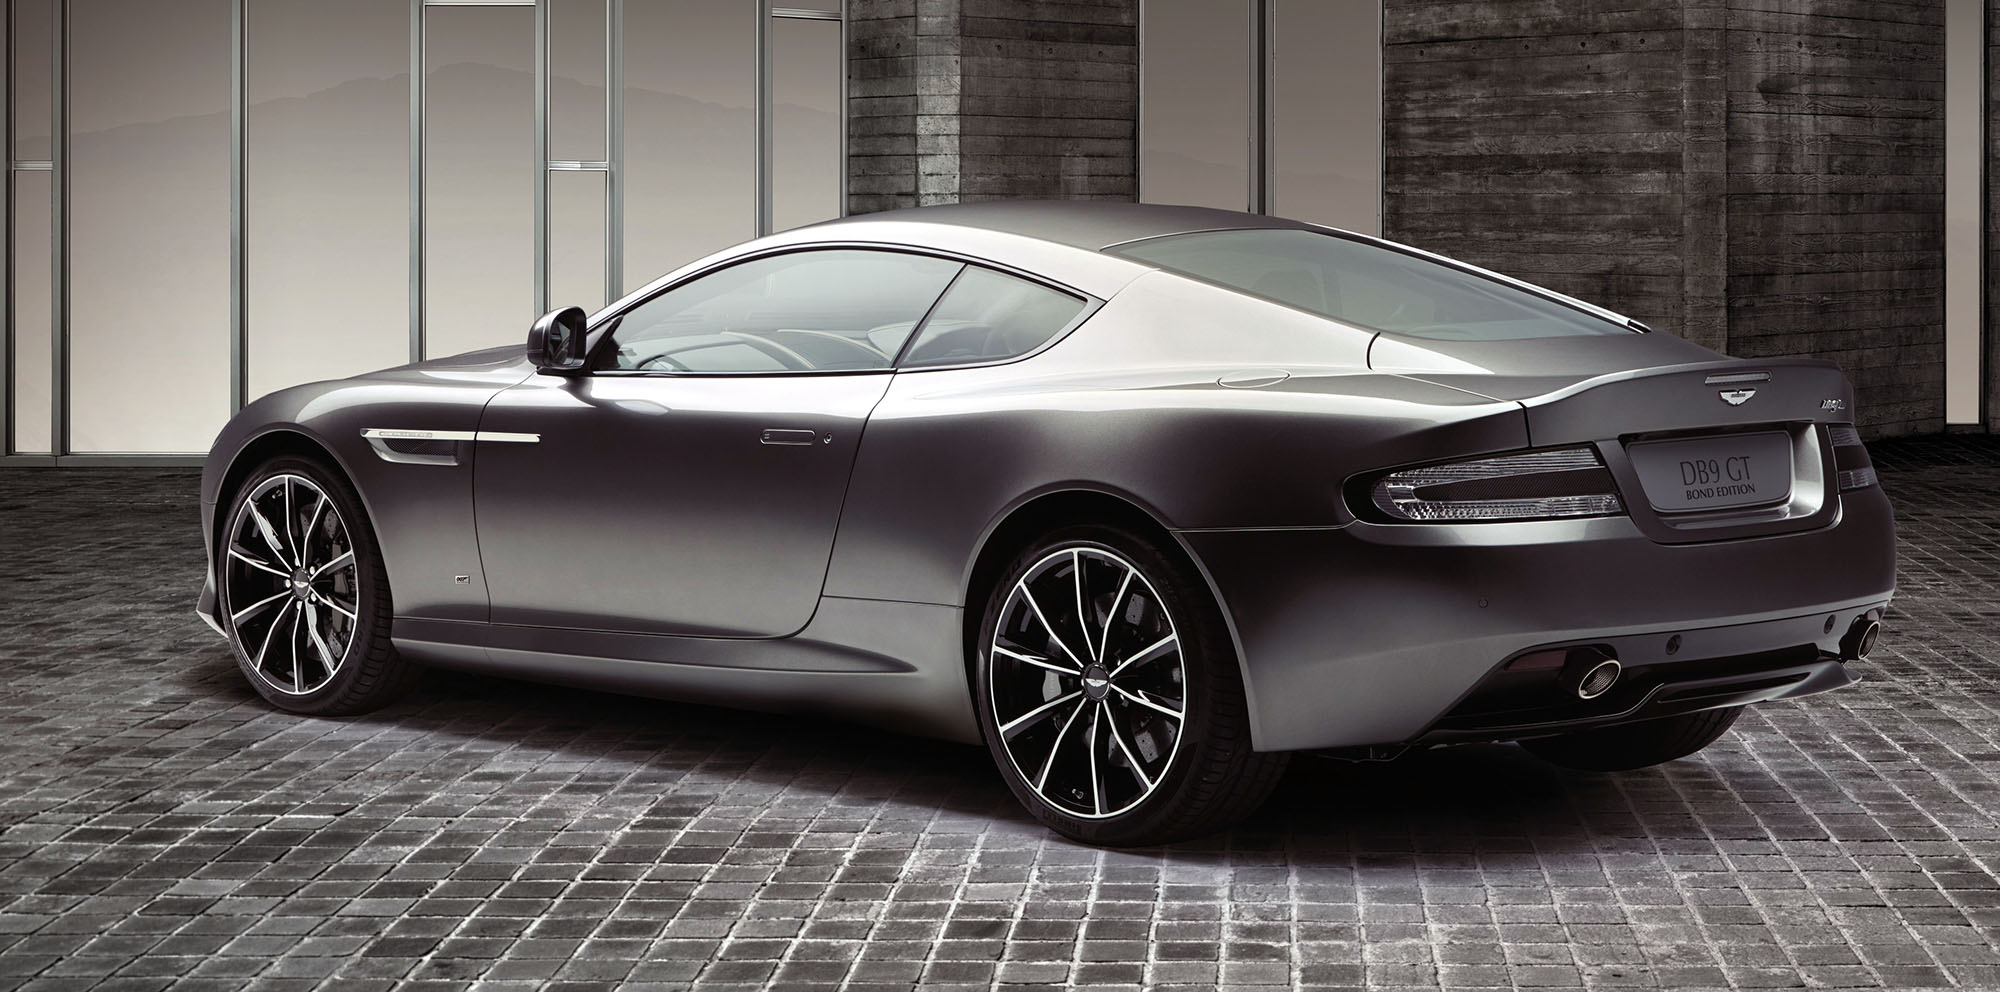 Aston Martin Db9 Gt Bond Edition Revealed Photos 1 Of 3